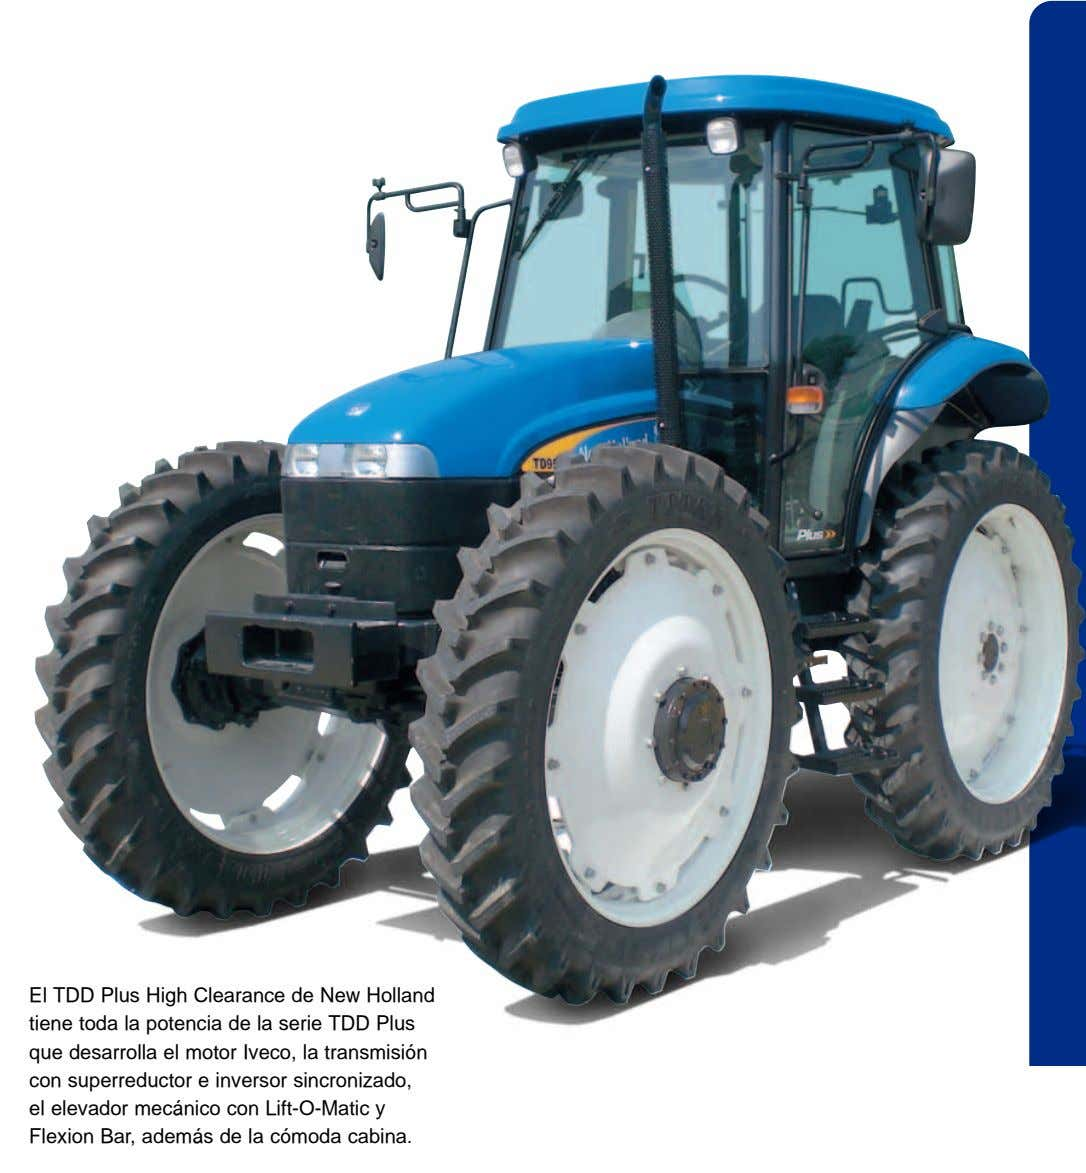 El TDD Plus High Clearance de New Holland tiene toda la potencia de la serie TDD